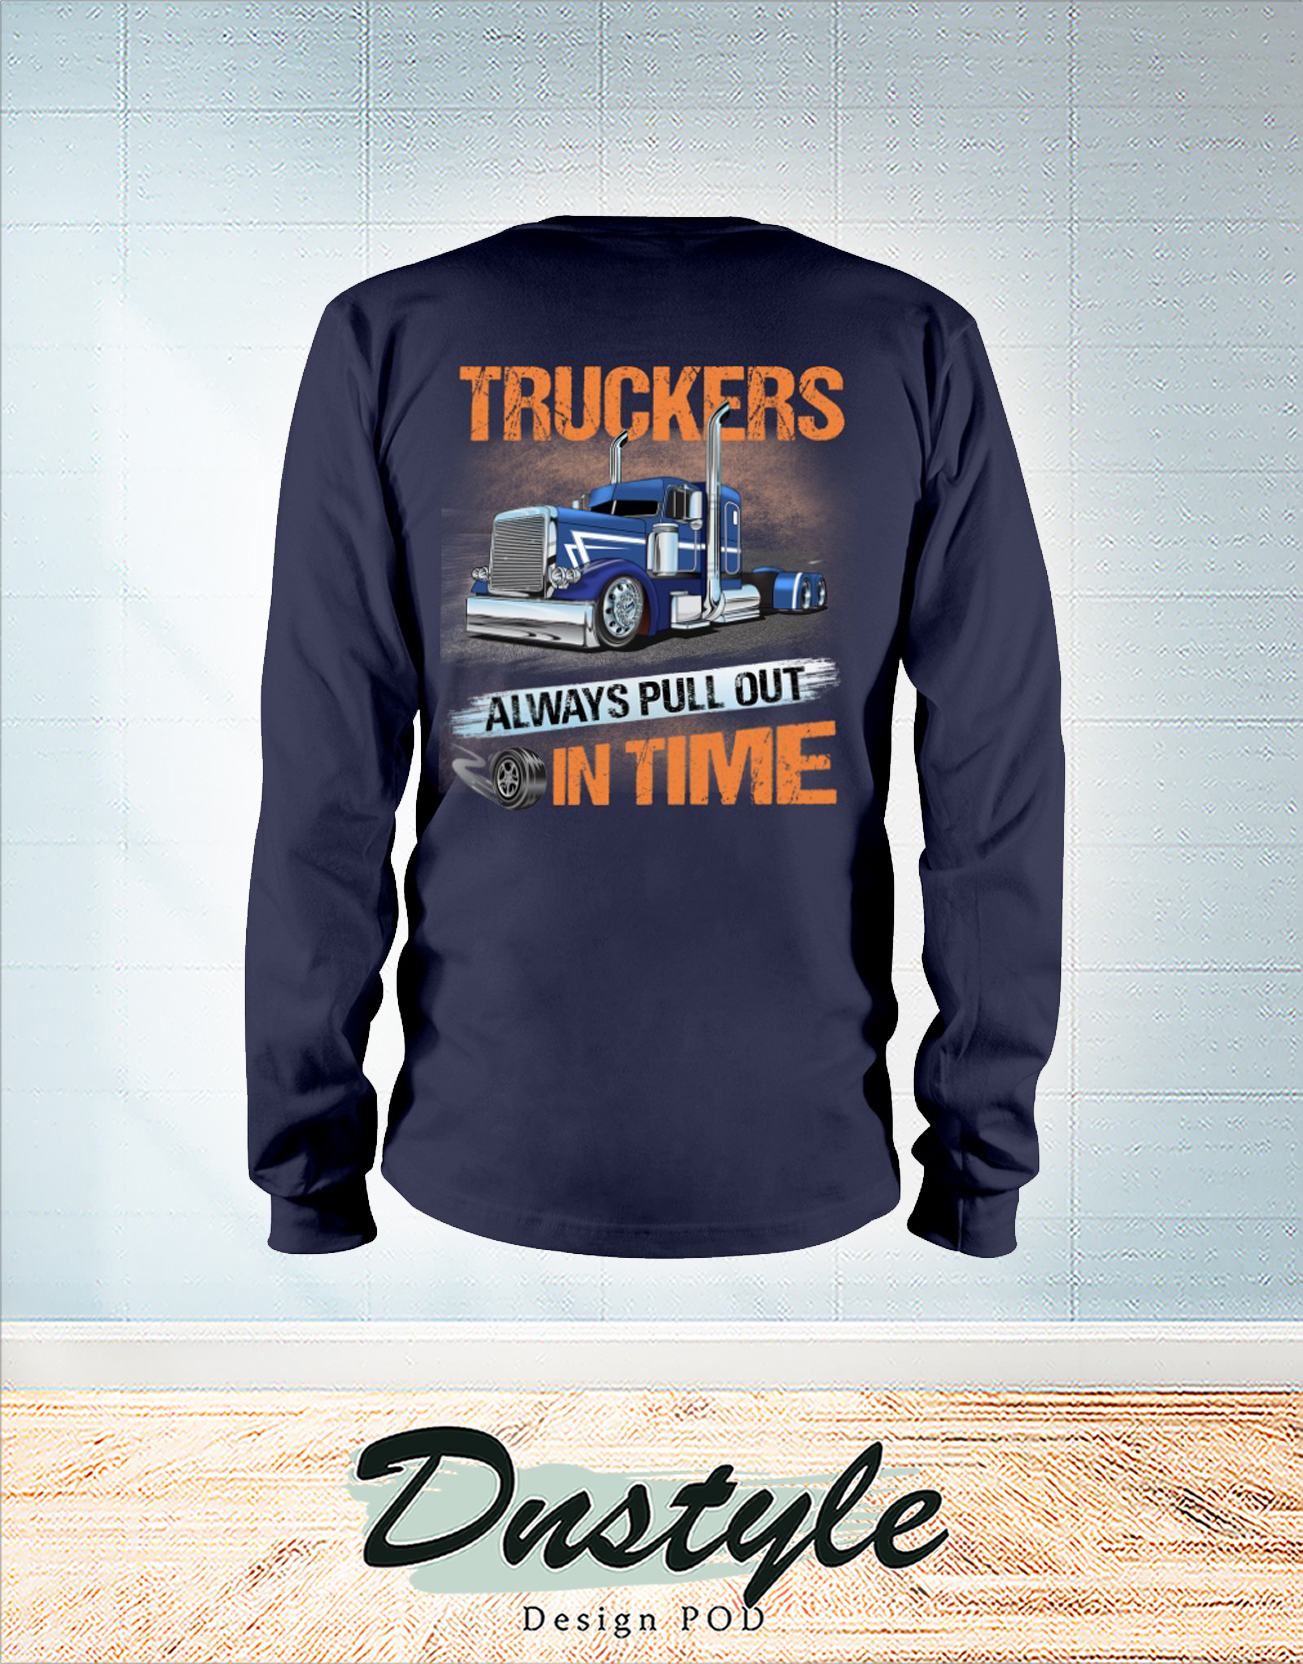 Truckers always pull out in time long sleeve